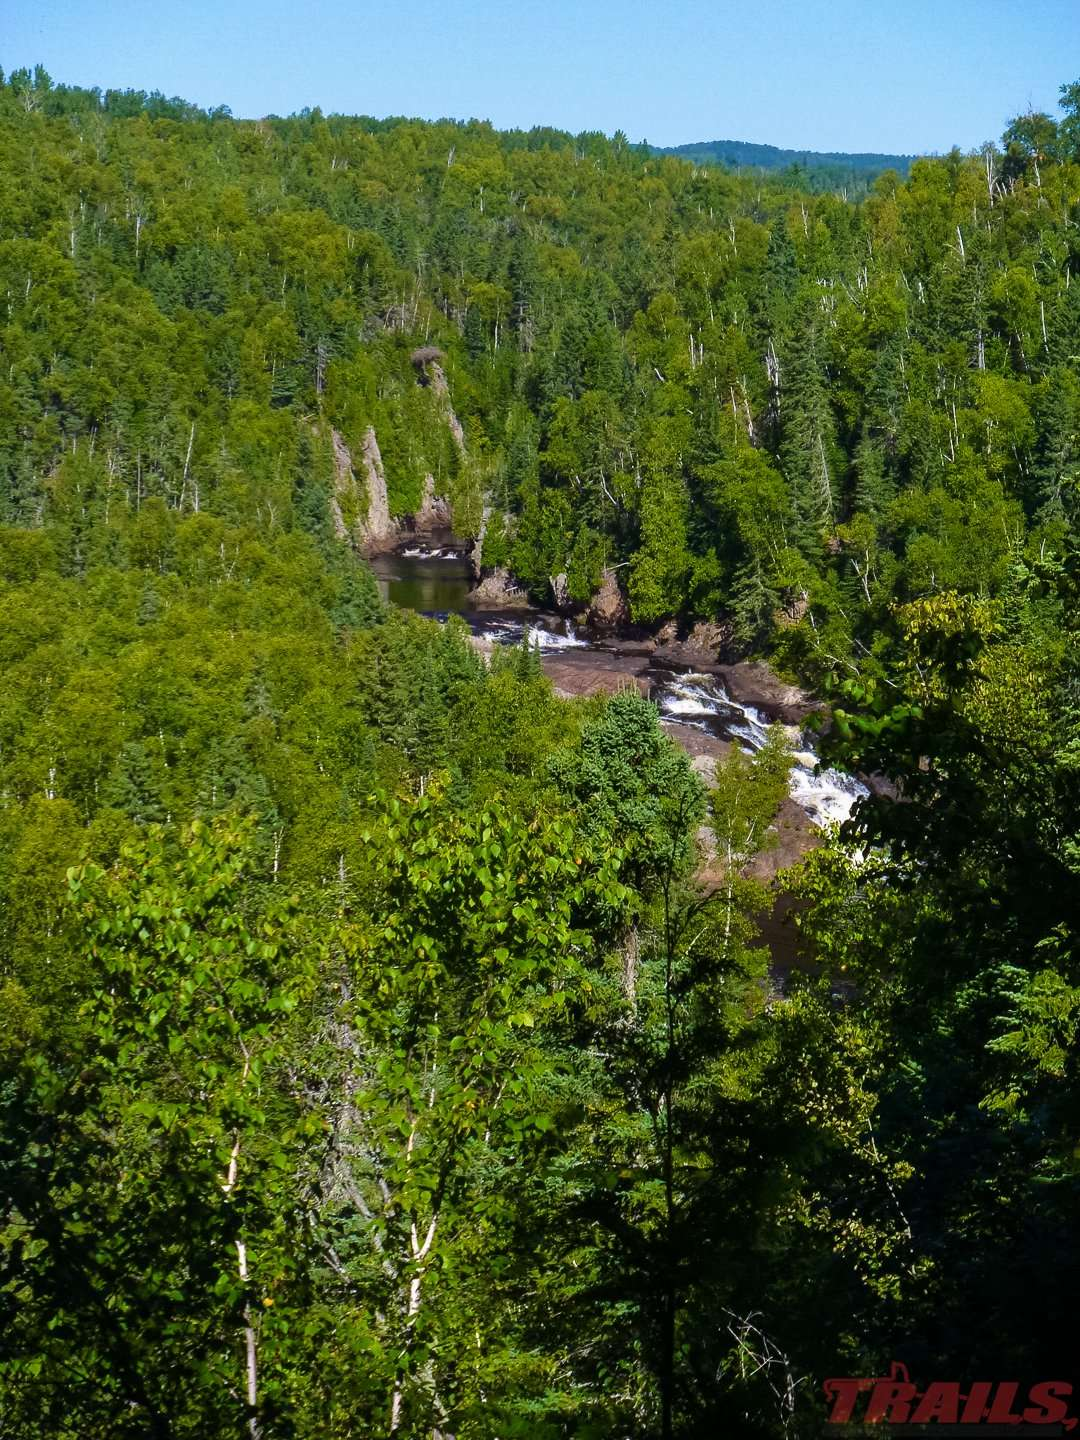 View of the Brule River from a scenic overlookat Judge C.R. Magney State Park